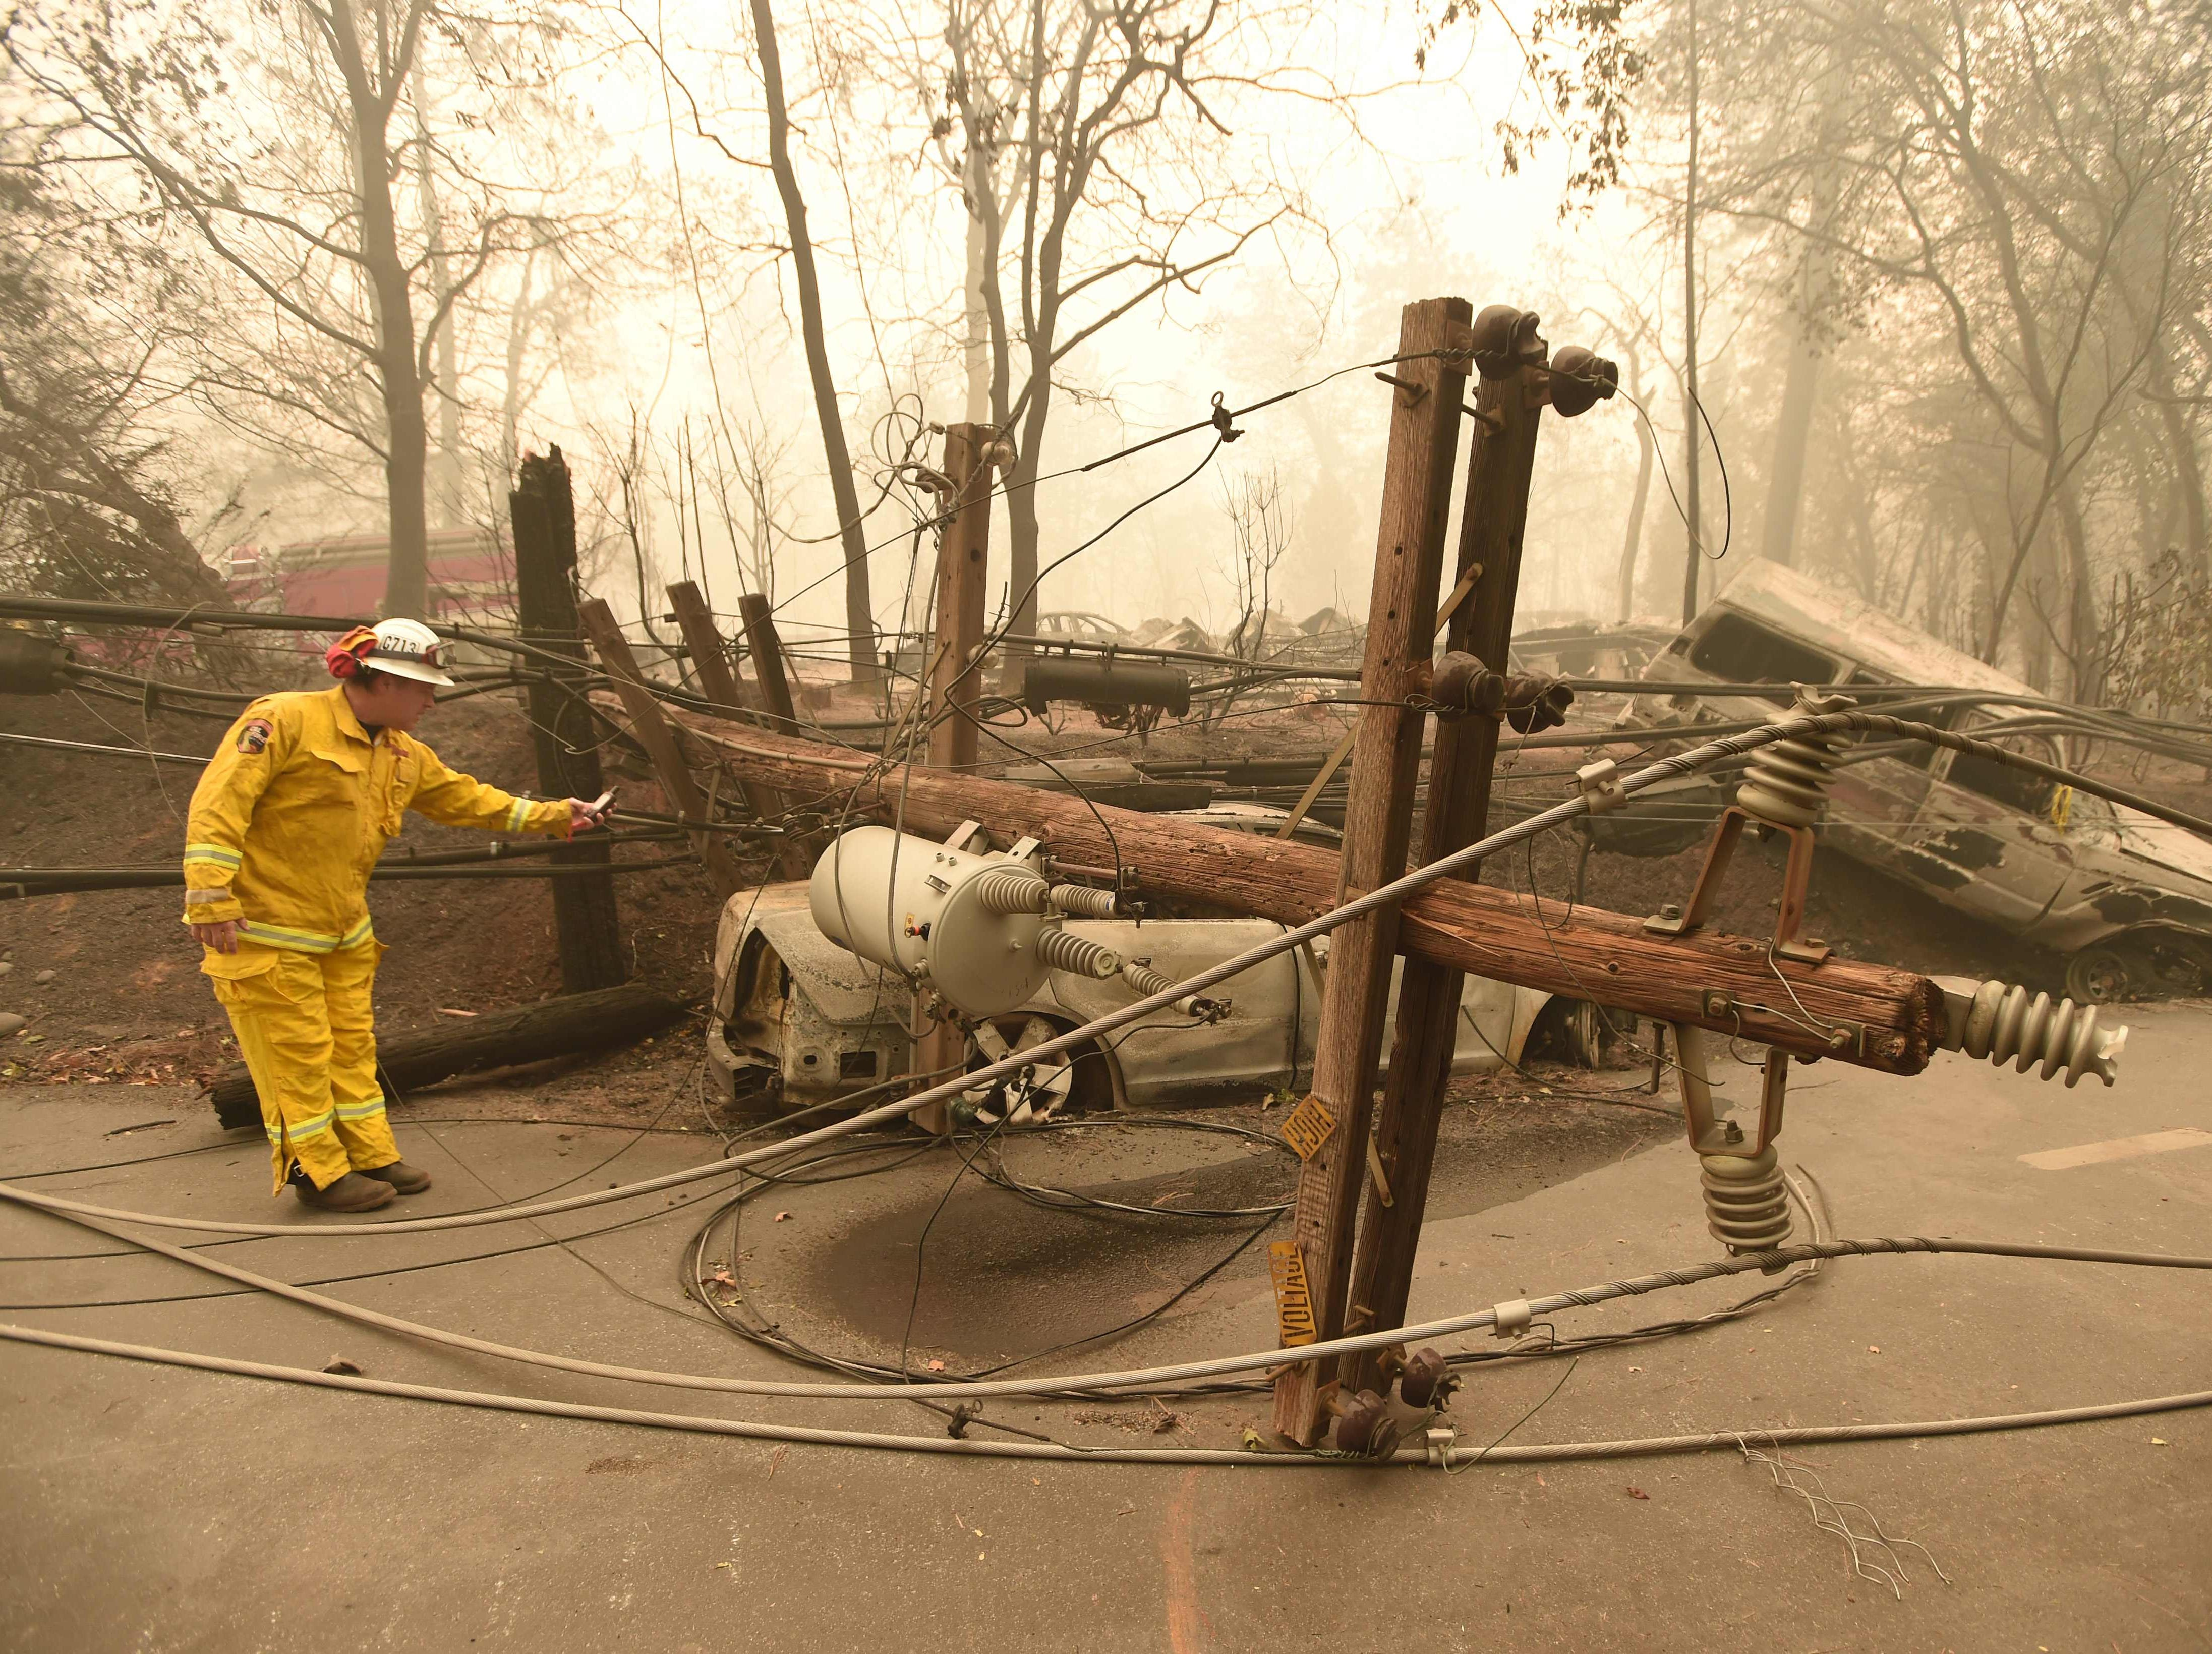 CalFire firefighter Scott Wit surveys burned out vehicles near a fallen power line on the side of the road after the Camp fire tore through the area in Paradise, Calif. on November 10, 2018.